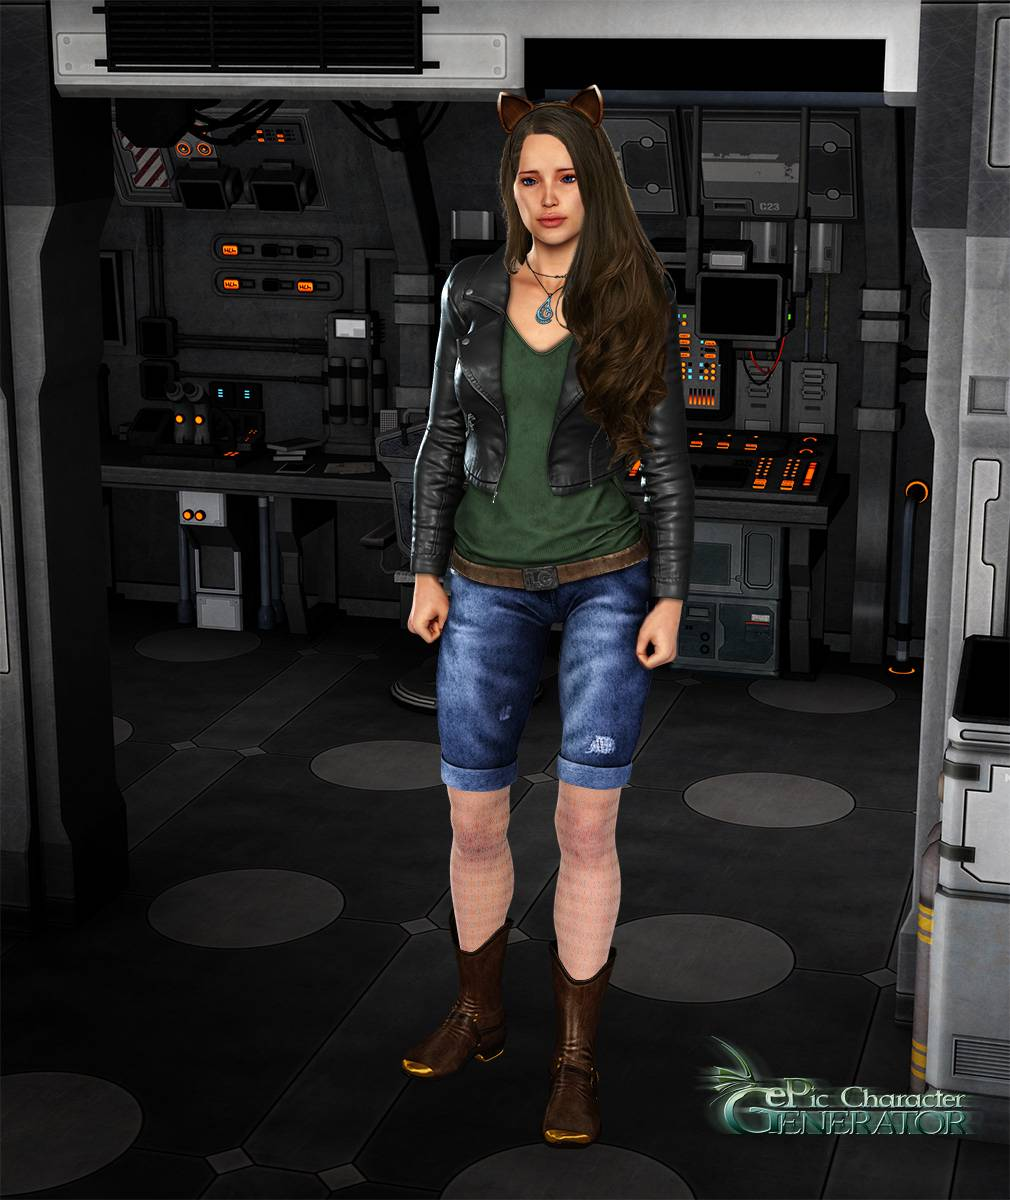 ePic Character Generator Season 2 Female Modern Screenshot 05